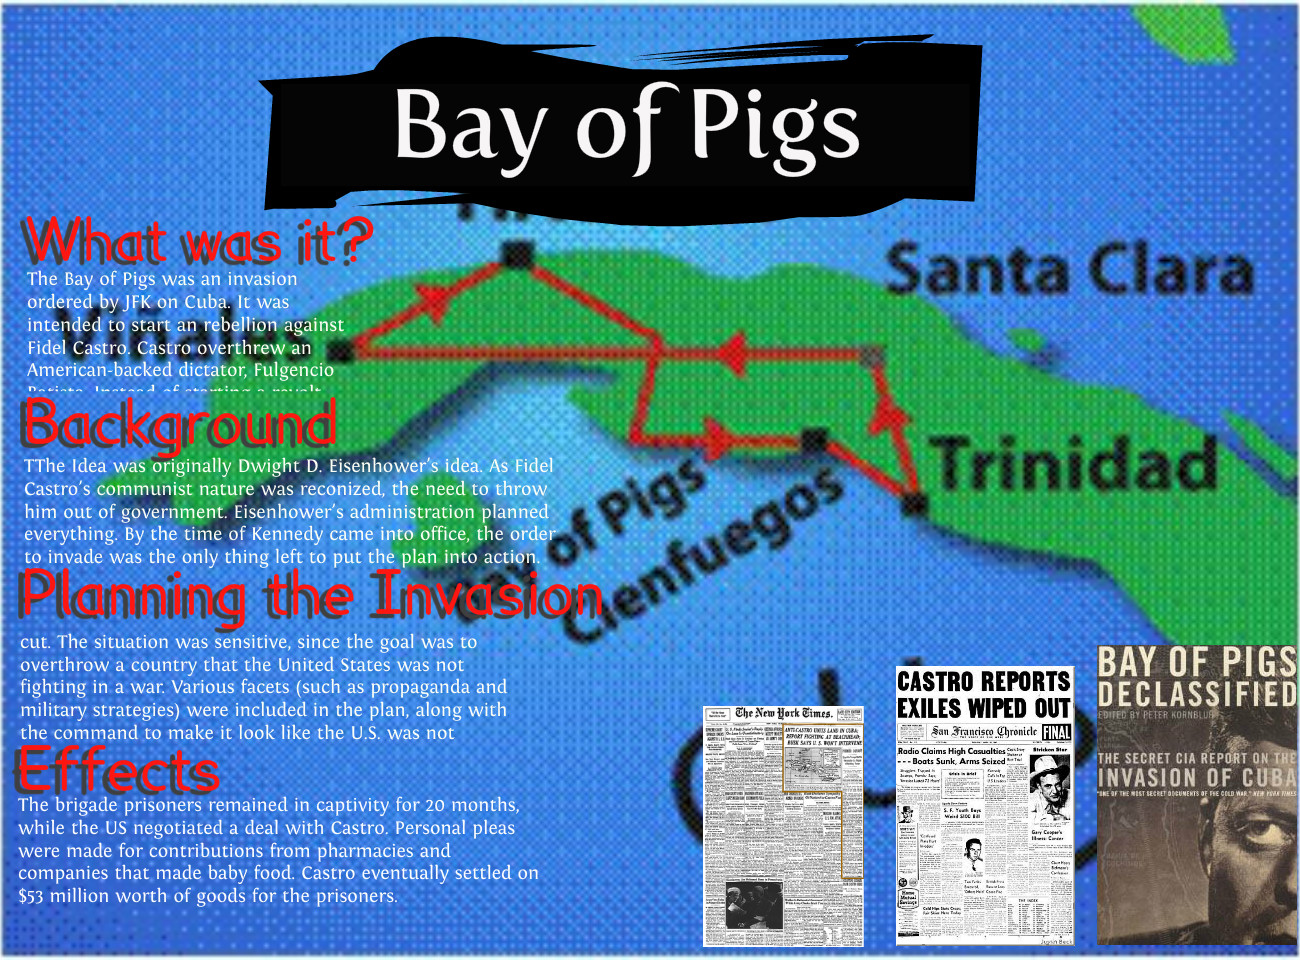 the history of the bay of pigs invasion